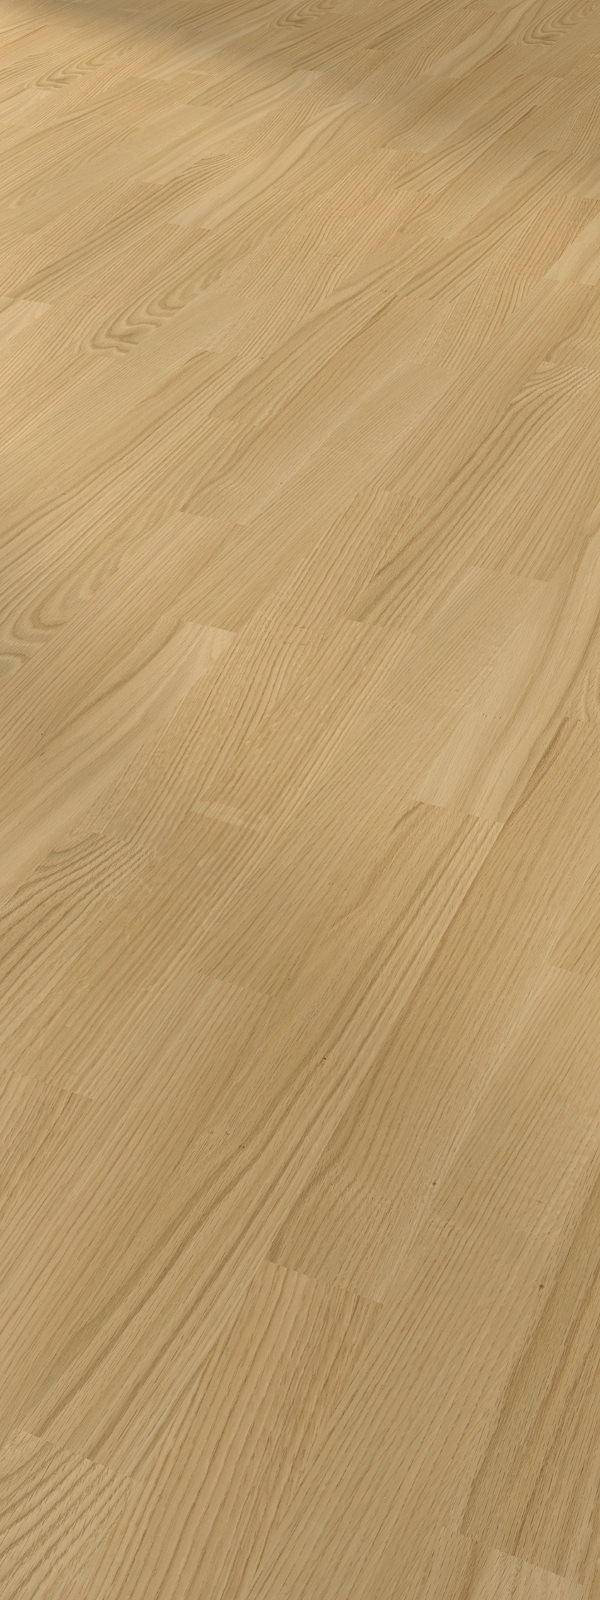 Board PREMIUM FLOOR HERRINGBONE Red Oak